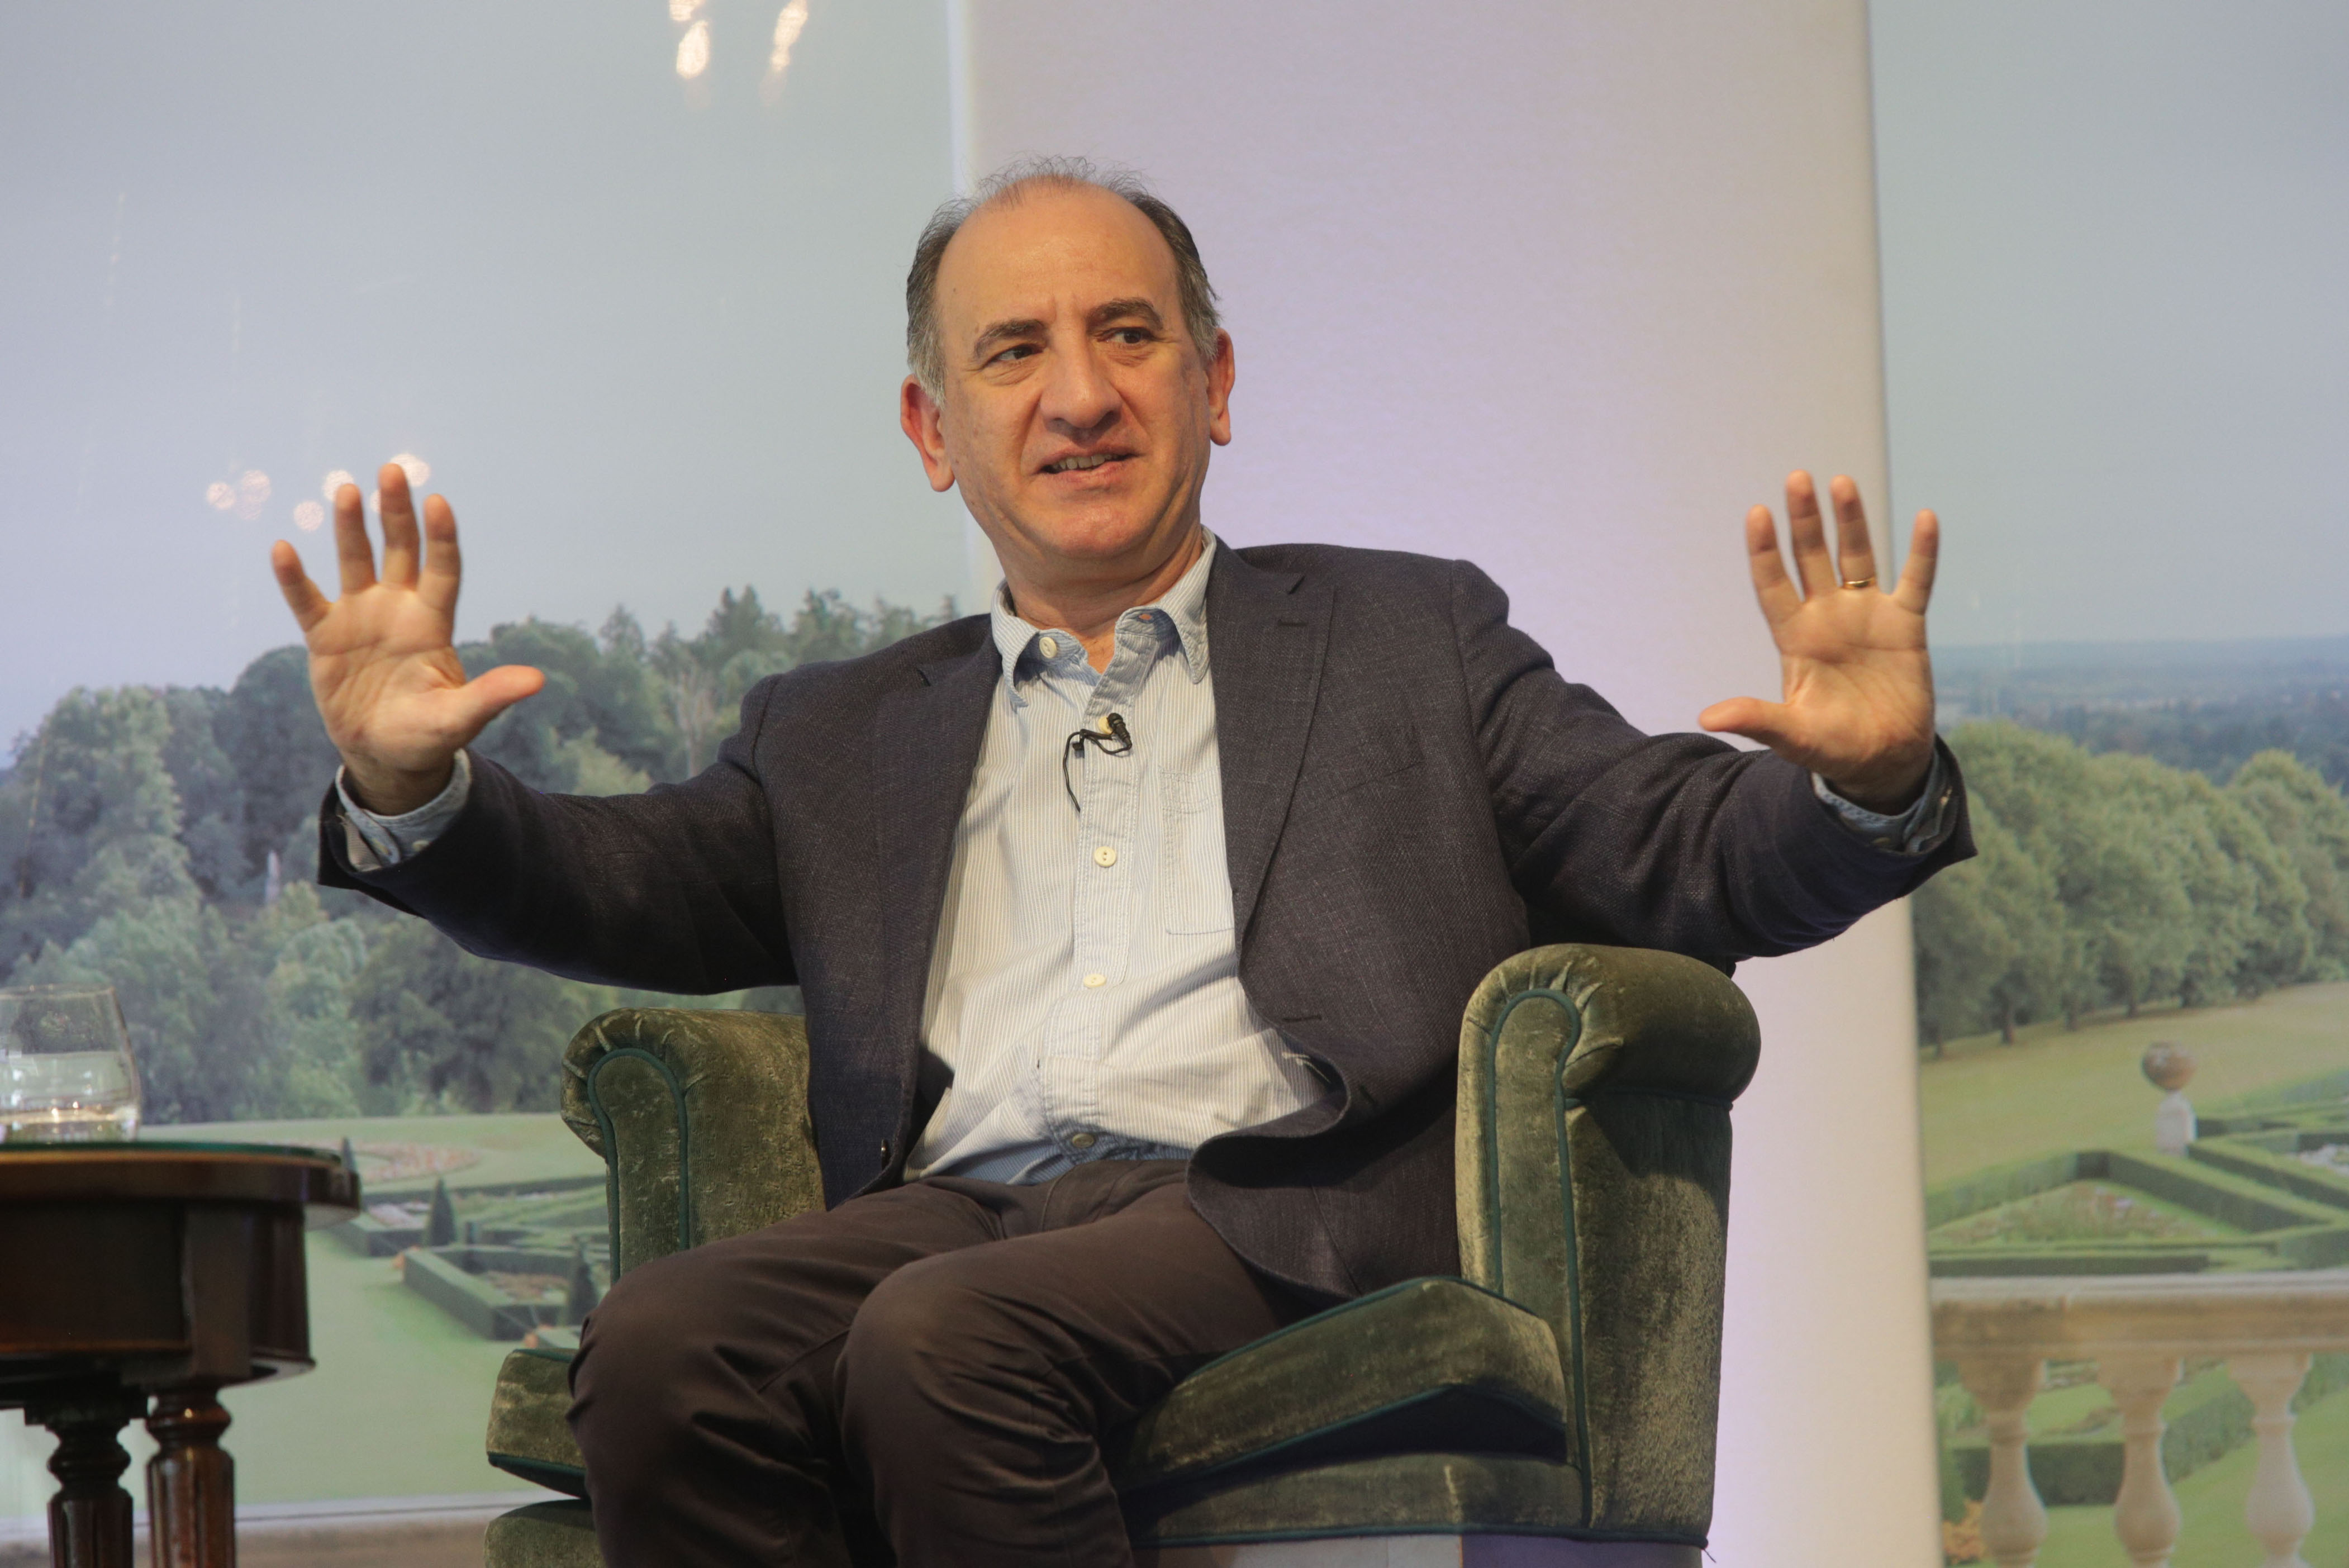 Armando Iannucci discussing The Personal History History of David Copperfield at Cliveden Literary Festival